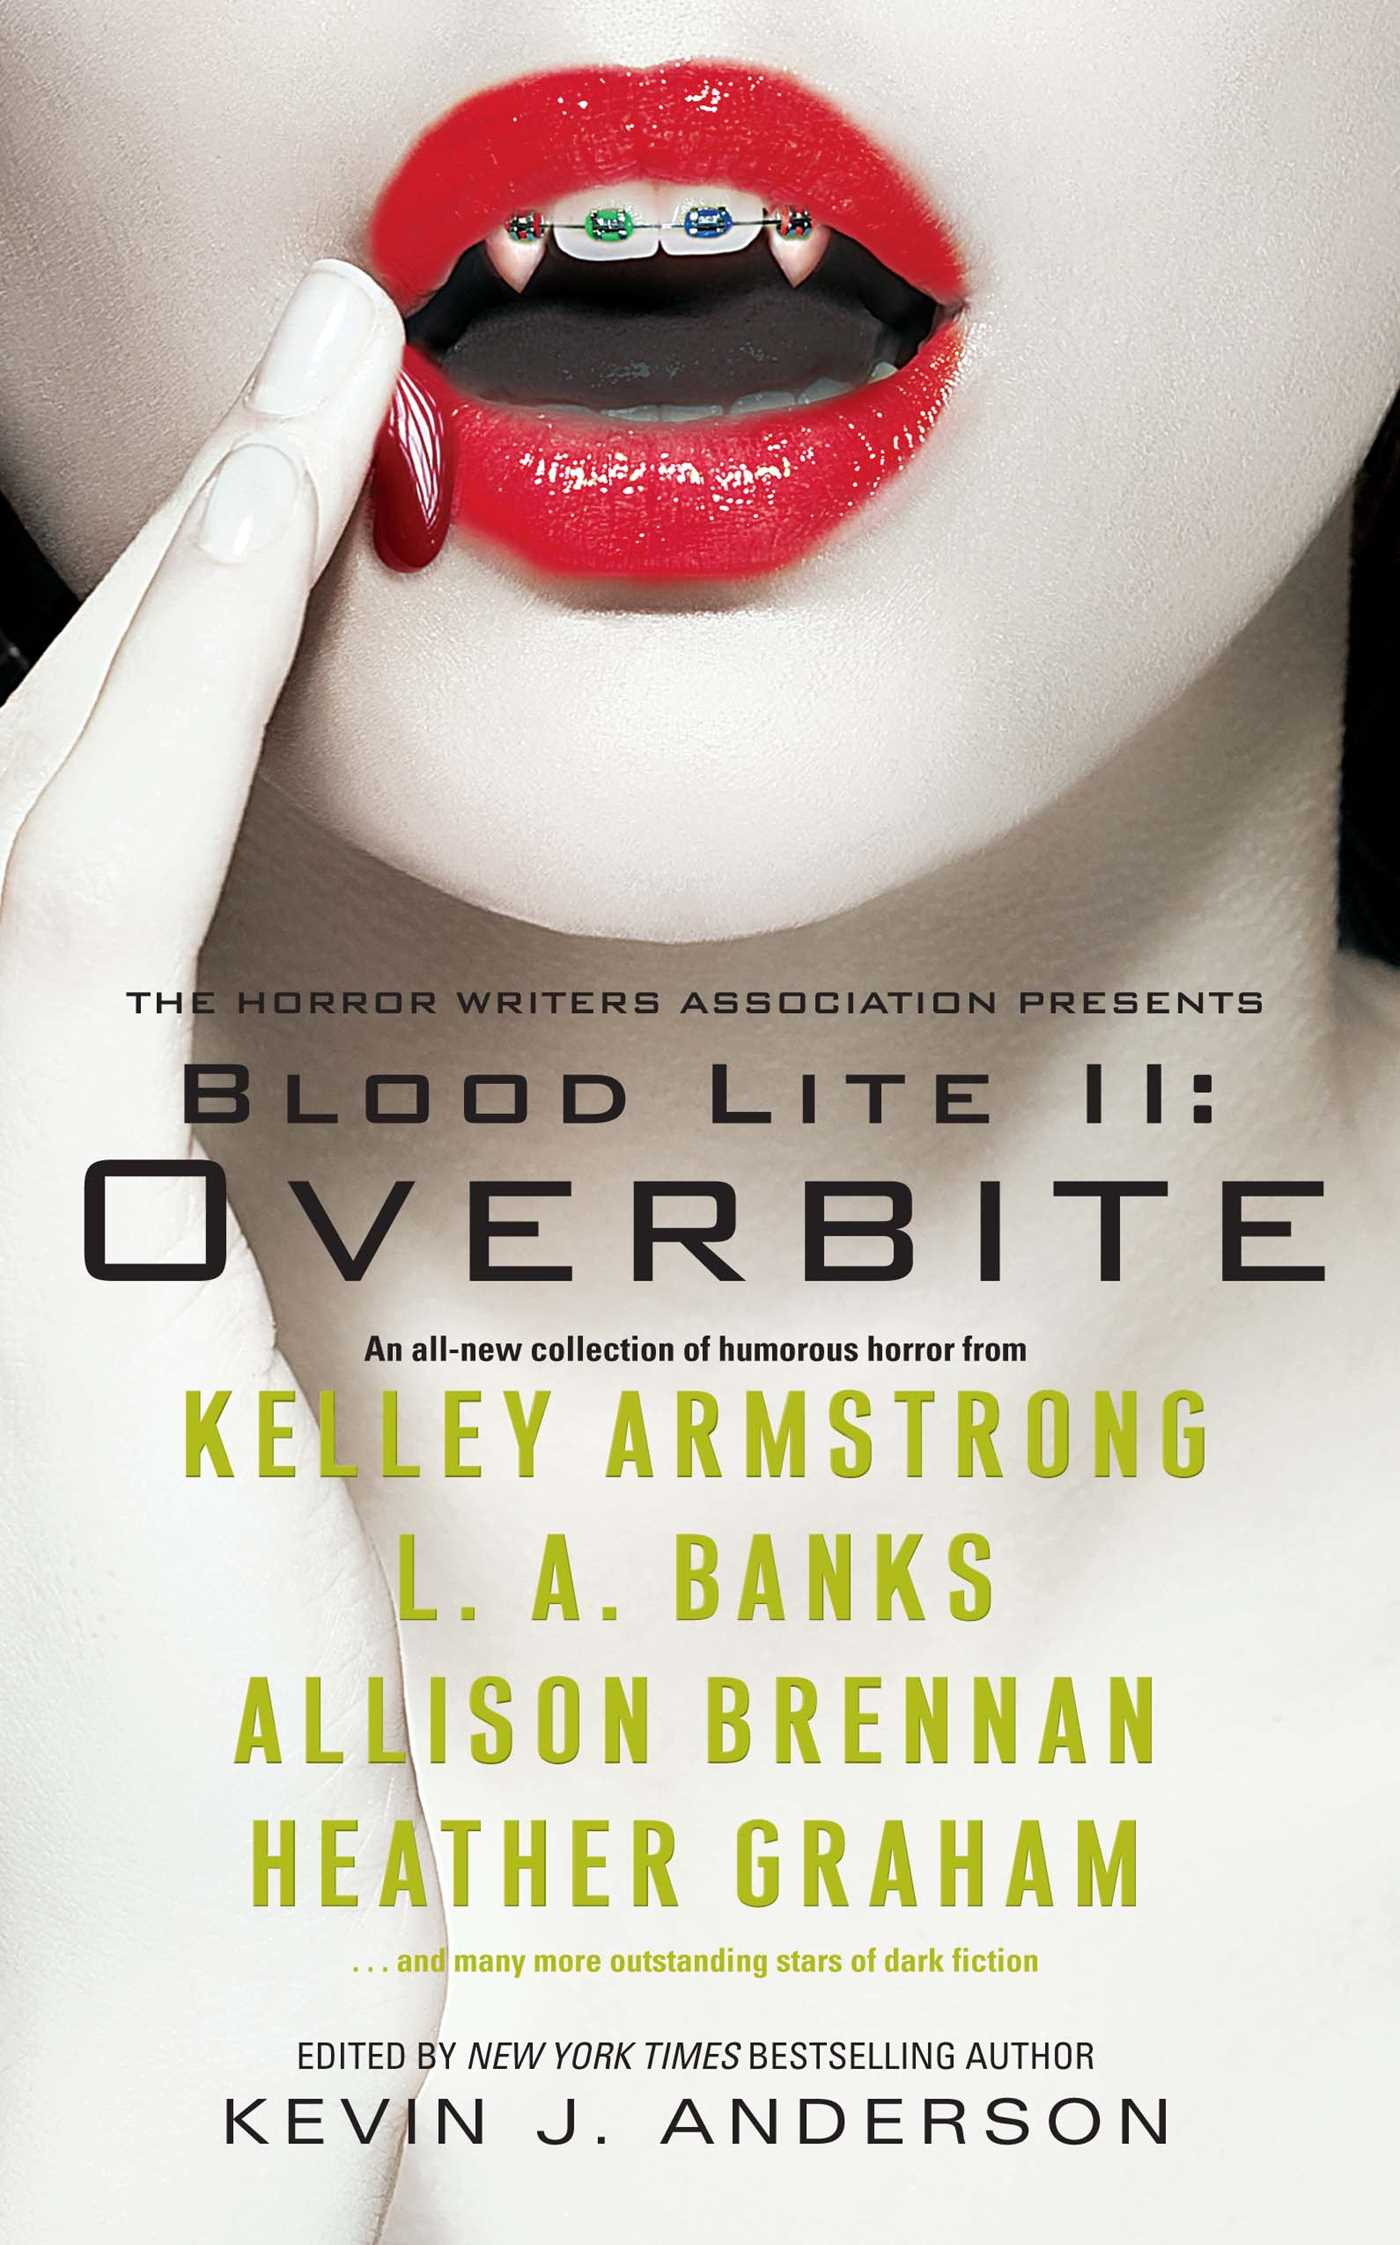 Blood lite ii overbite 9781439187708 hr